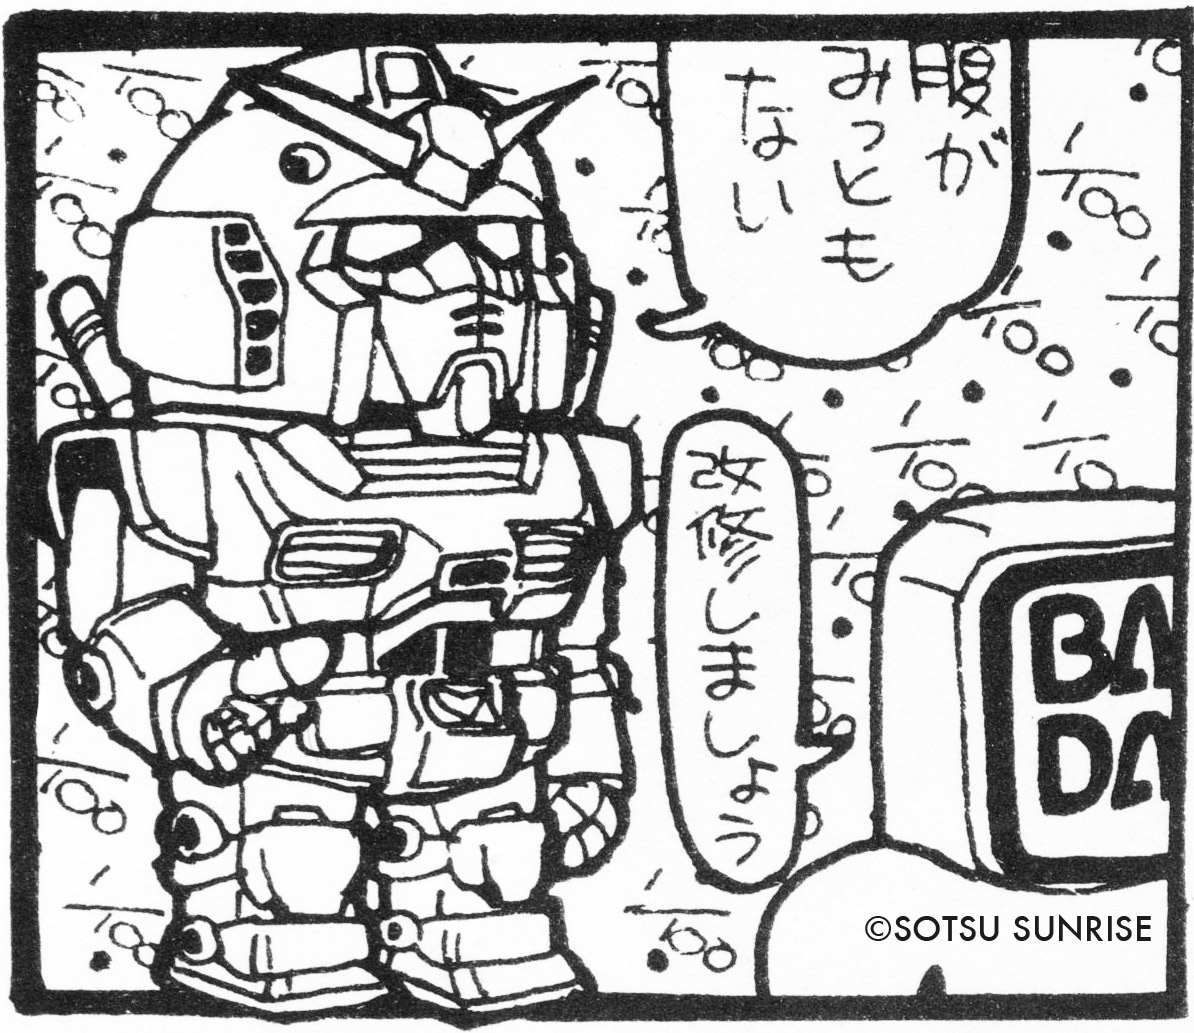 original sd gundam by koji yokoi